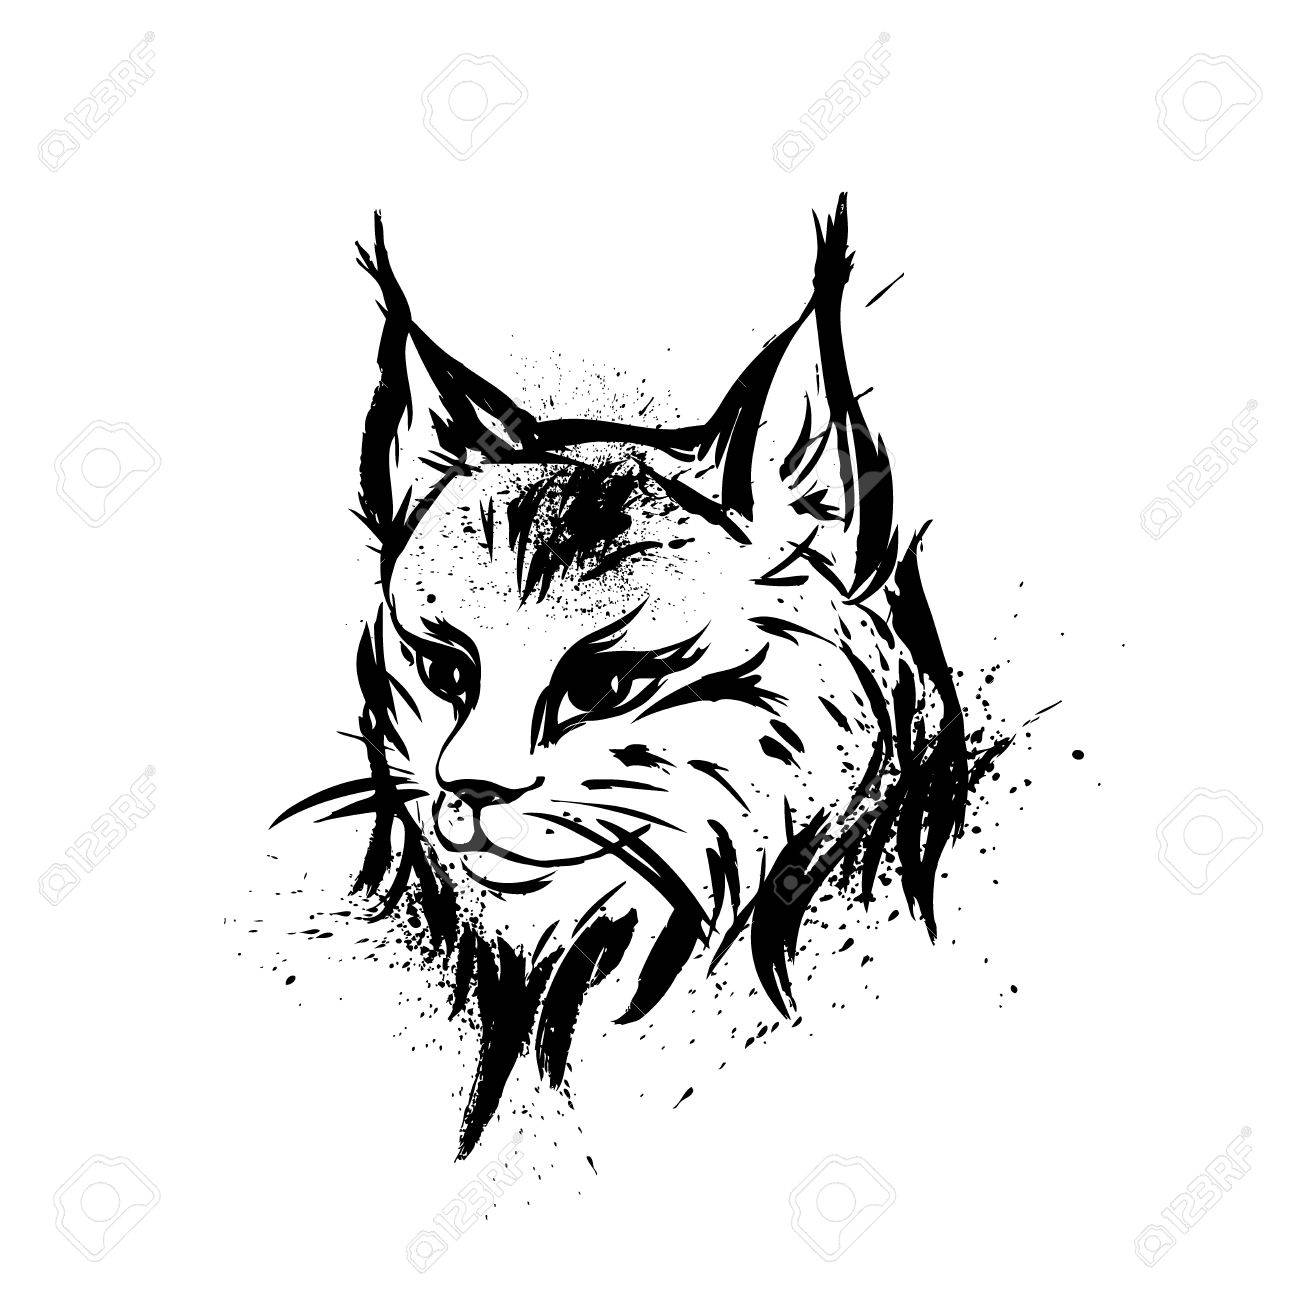 Vector lynx wild cat predator hand drawn black and white stylized